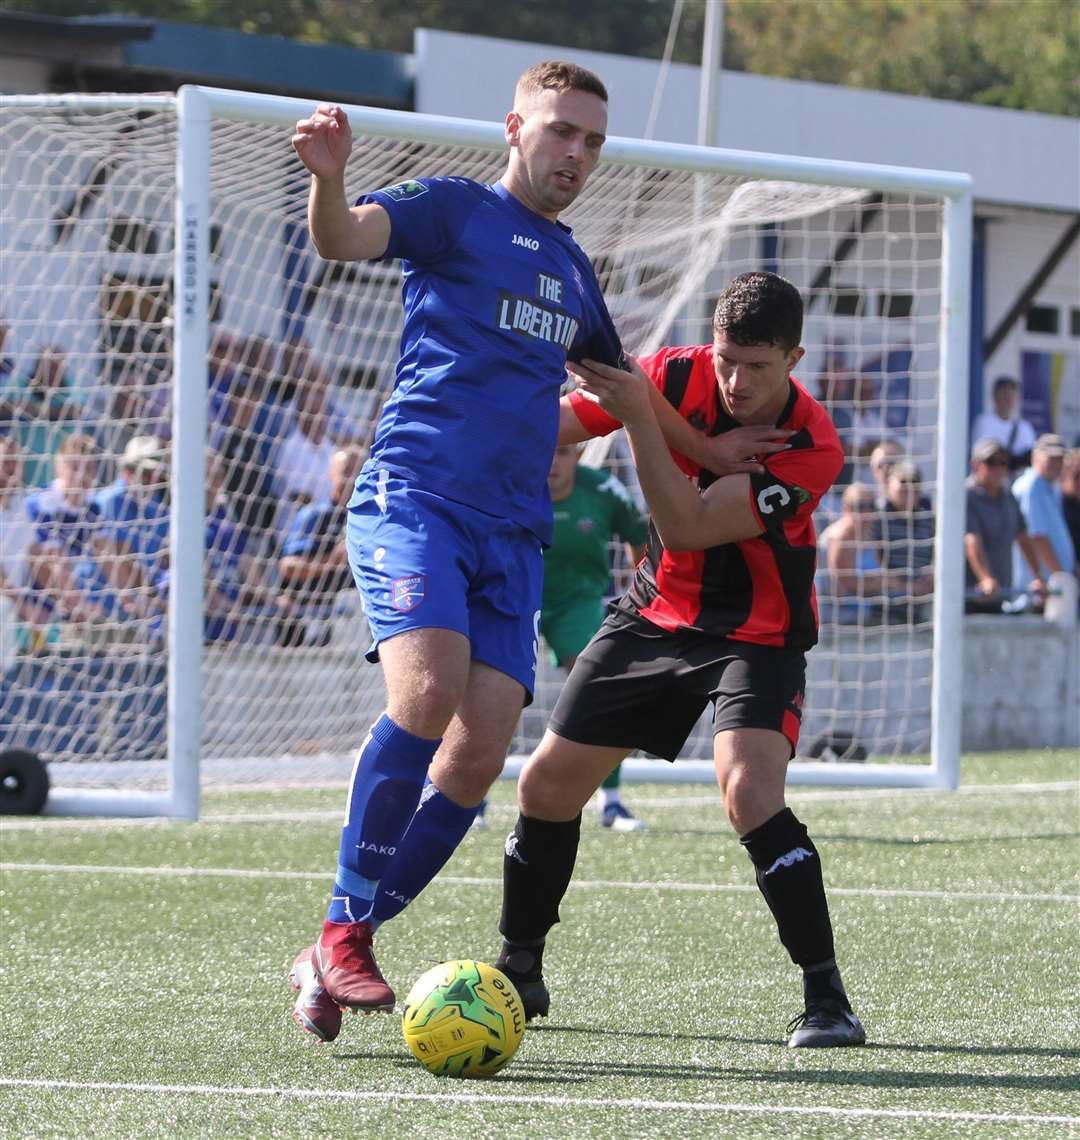 Margate striker Joe Taylor scored twice against Horndean Picture: Don Walker